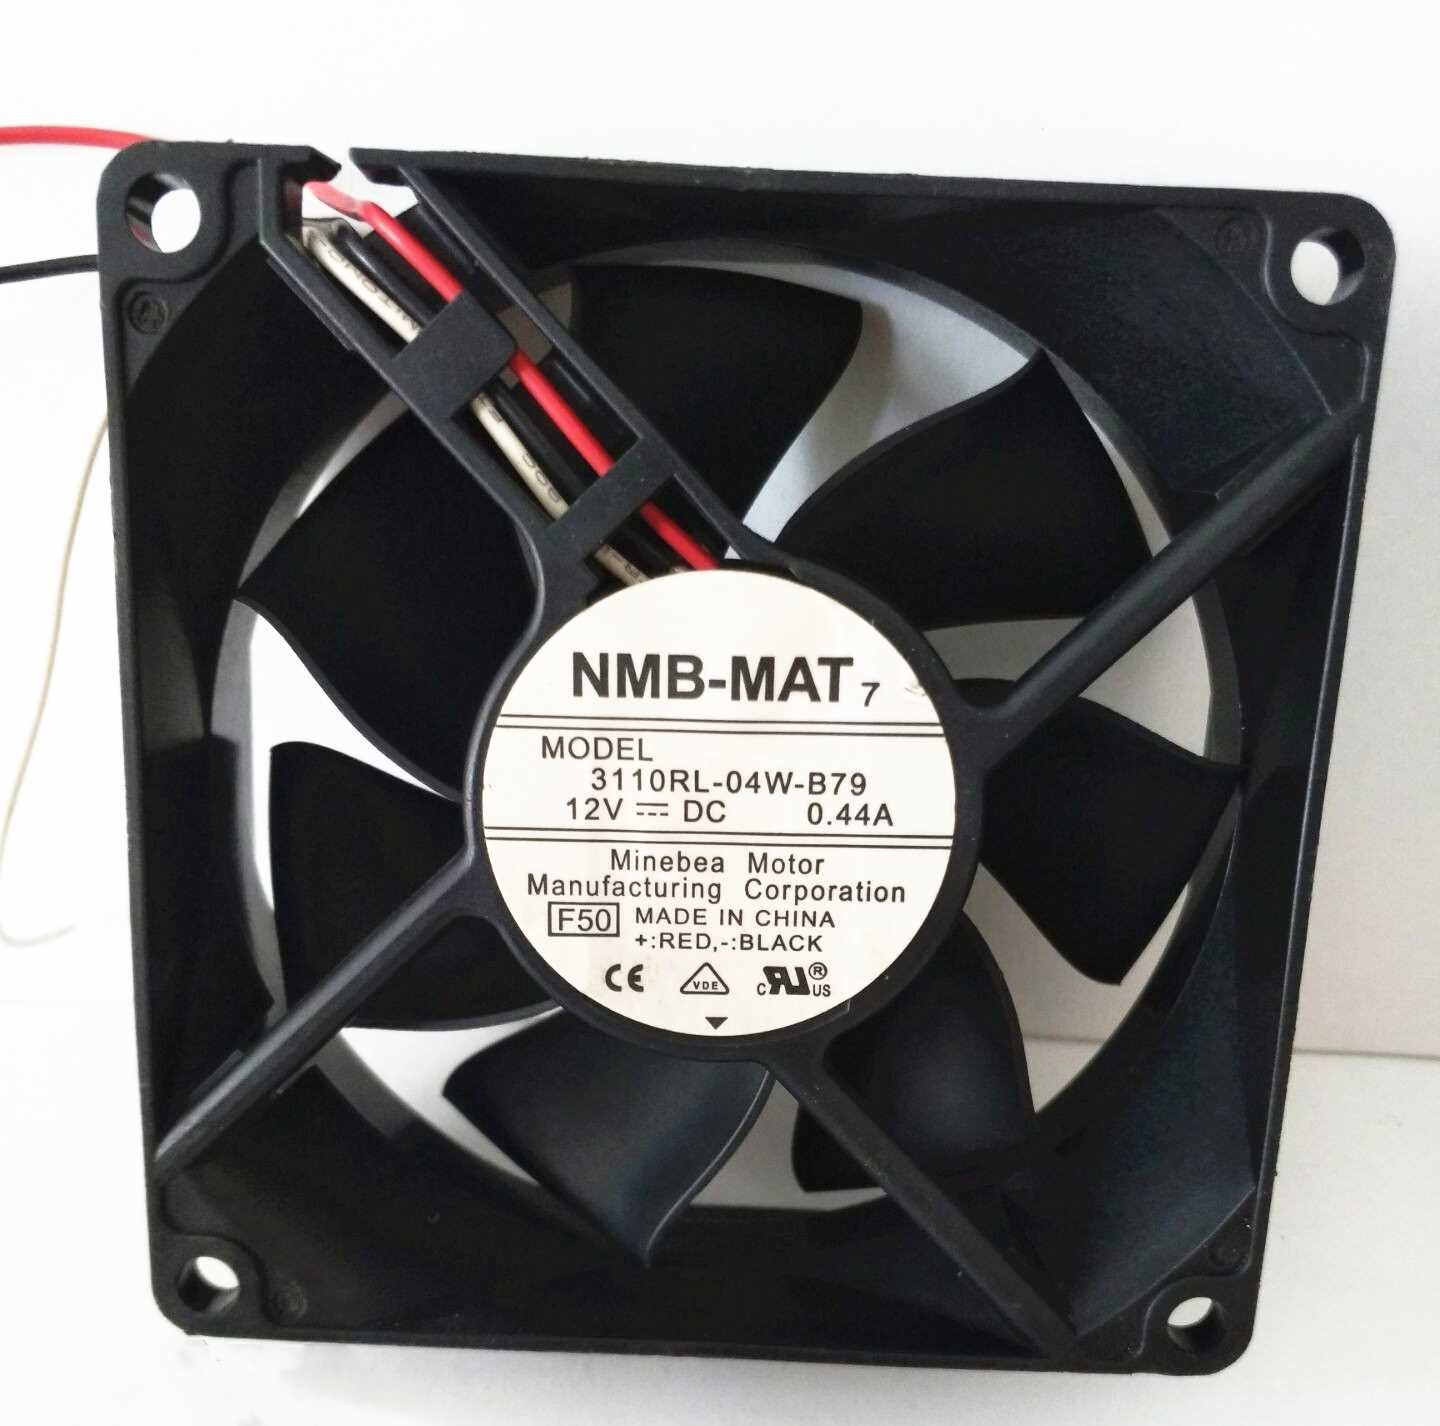 new fans dhgate product from nmb com mat mats or cooling hkaffinity